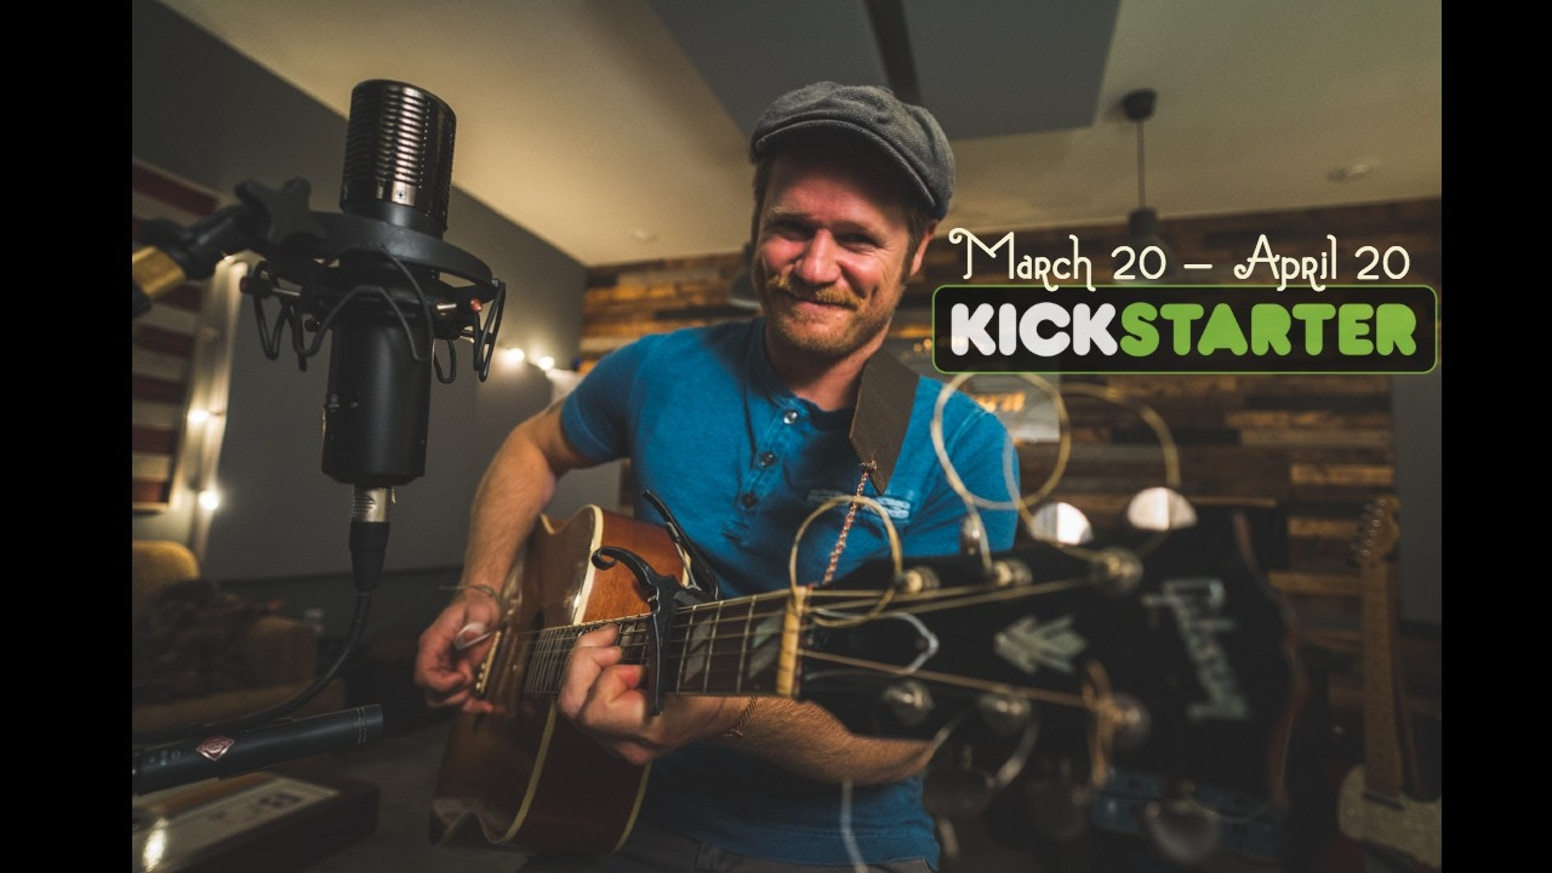 259 Backers Successfully Funded This Project On April 19th for Nicholas Edward Williams' debut fingerpicking and folksong album 'As I Go Ramblin' Around'!